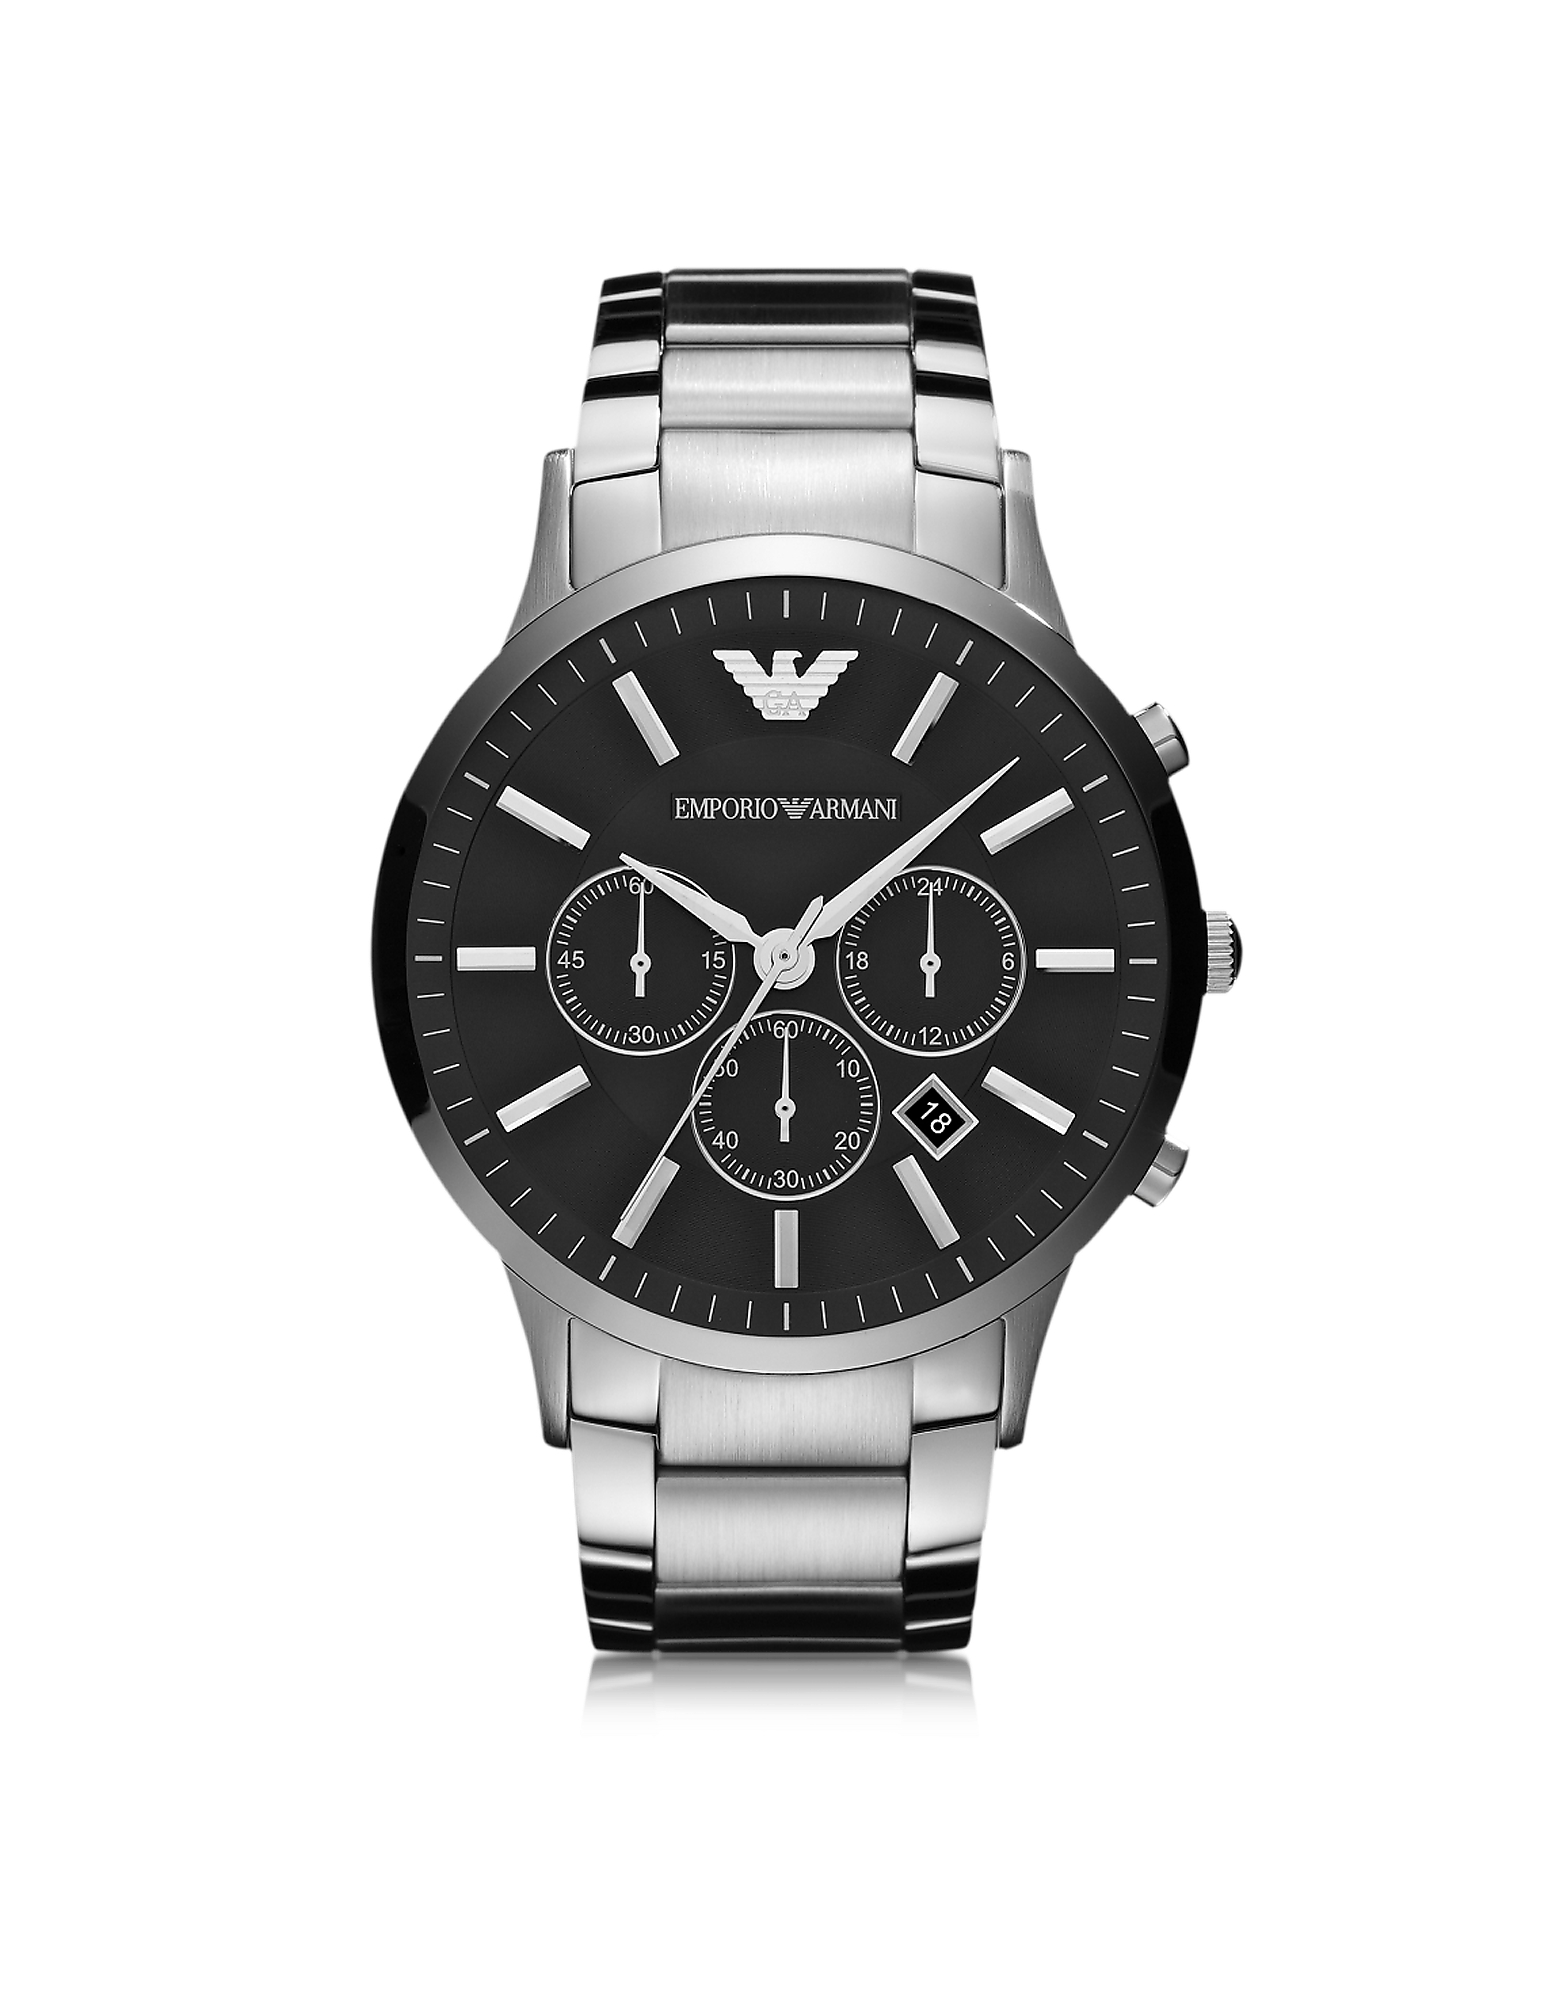 Silver Tone Stainless Steel Men's Watch w/Black Dial от Forzieri.com INT